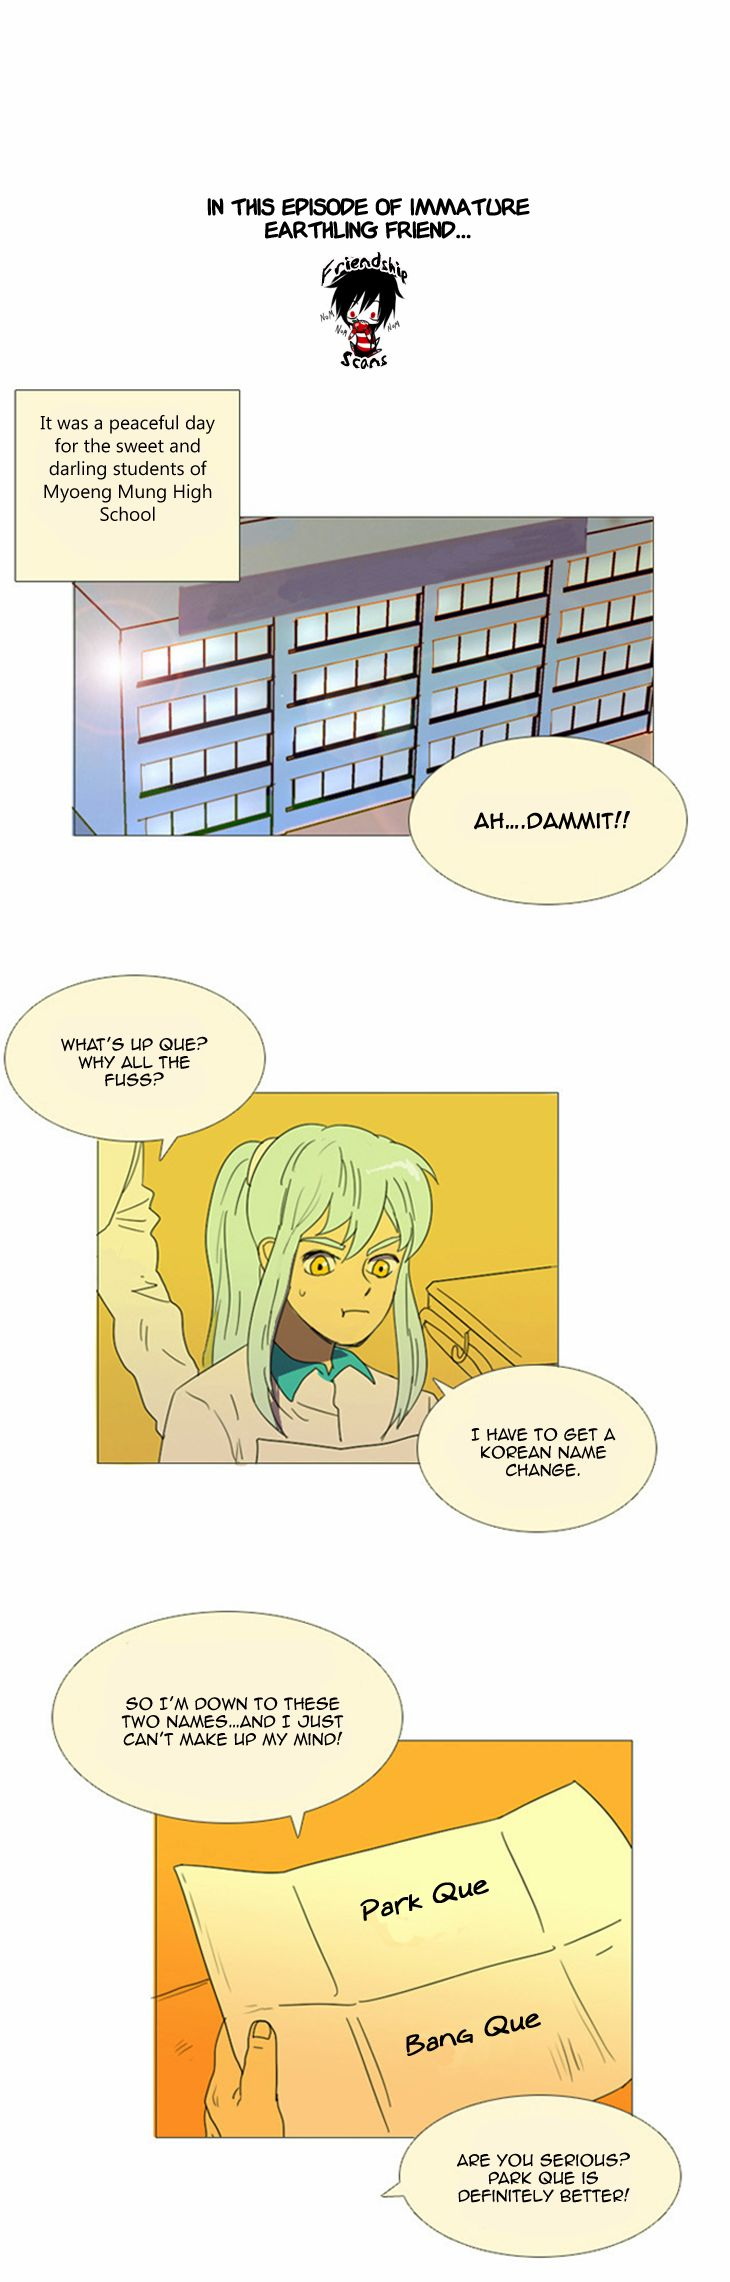 Immature Earthling Friend 12 Page 2